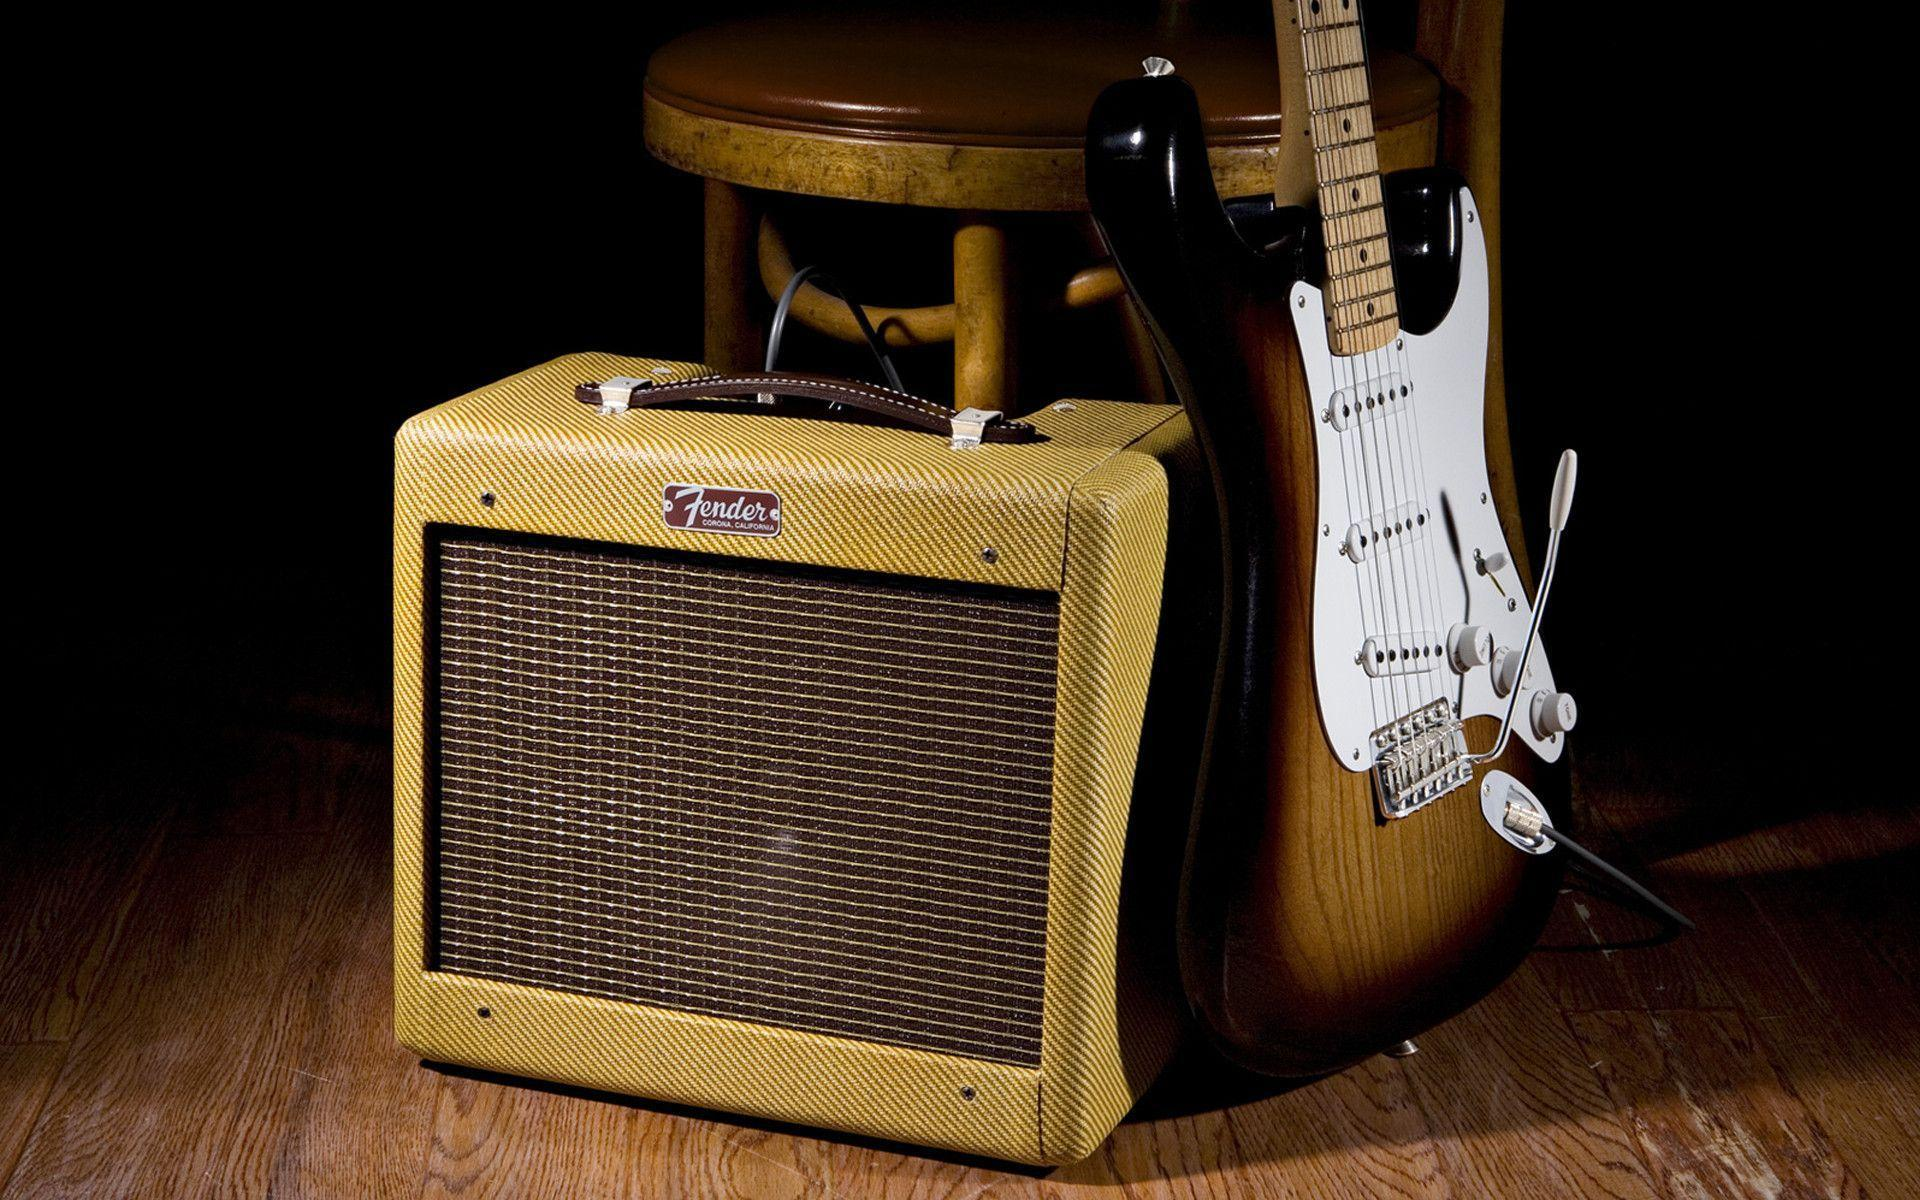 Most Downloaded Fender Wallpapers - Full HD wallpaper search